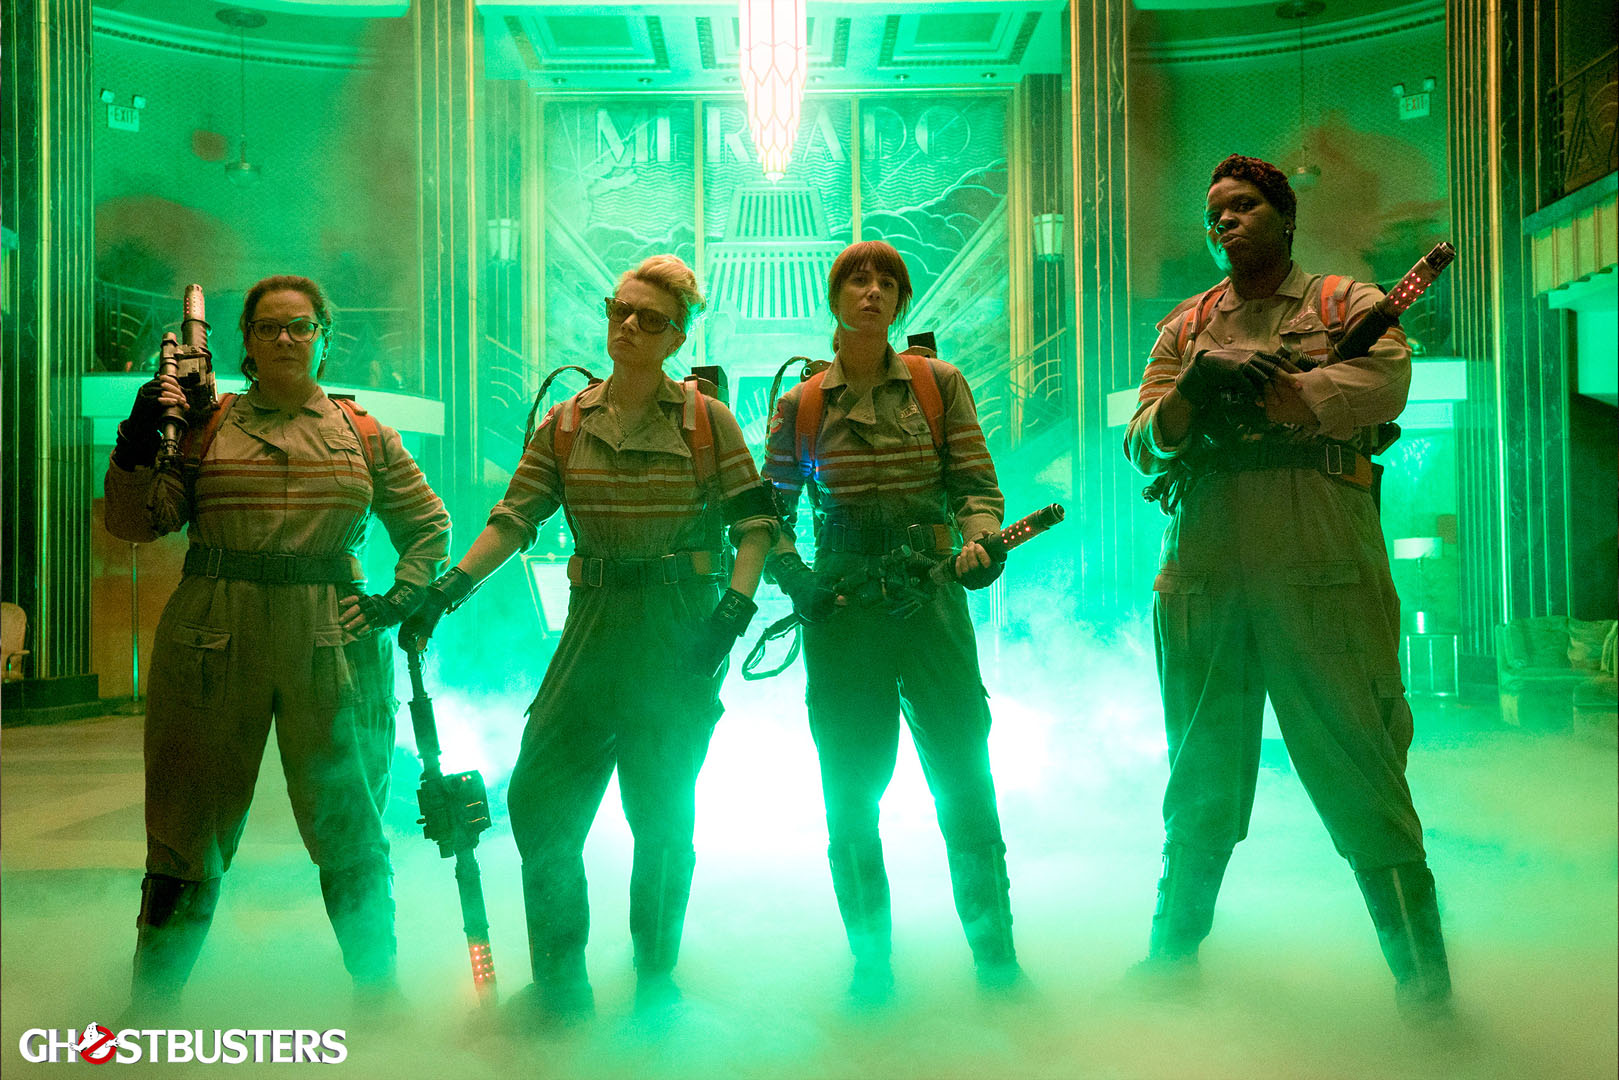 Photo from ghostbusters.com